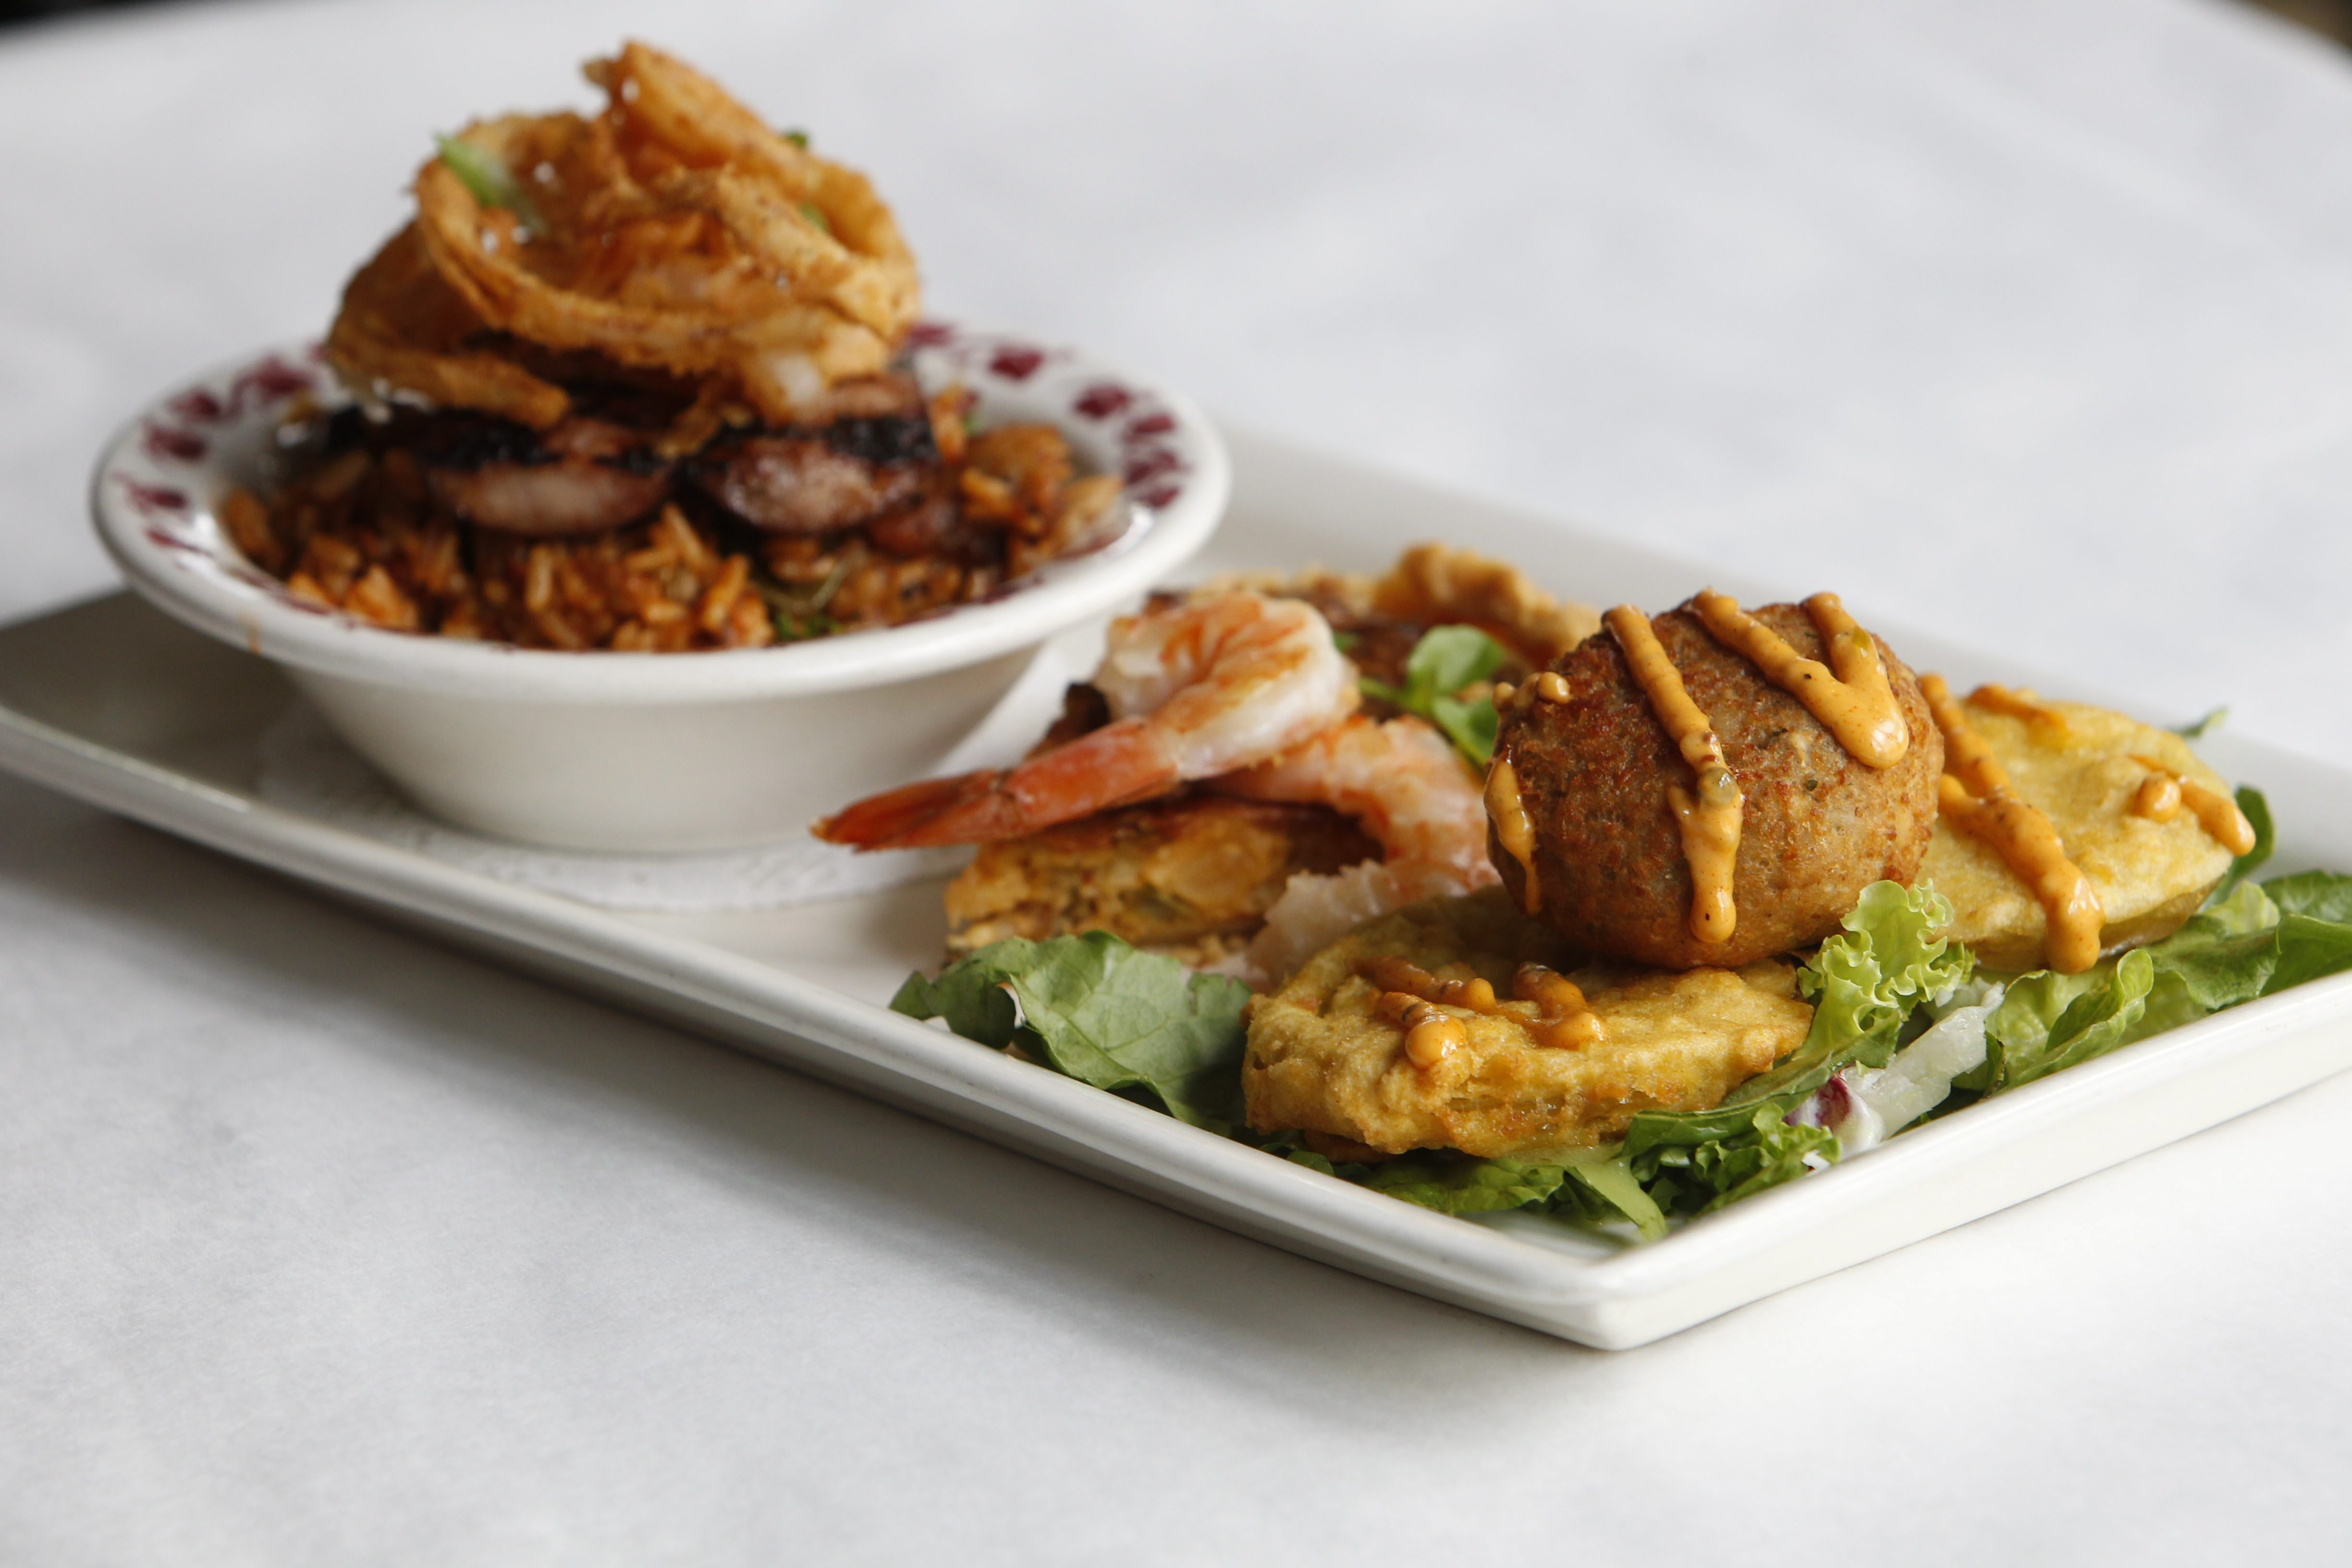 From left, jambalaya with grilled Polish sausage and onion rings; lobster cheesecake with shrimp; and crab cake over fried green tomatoes.